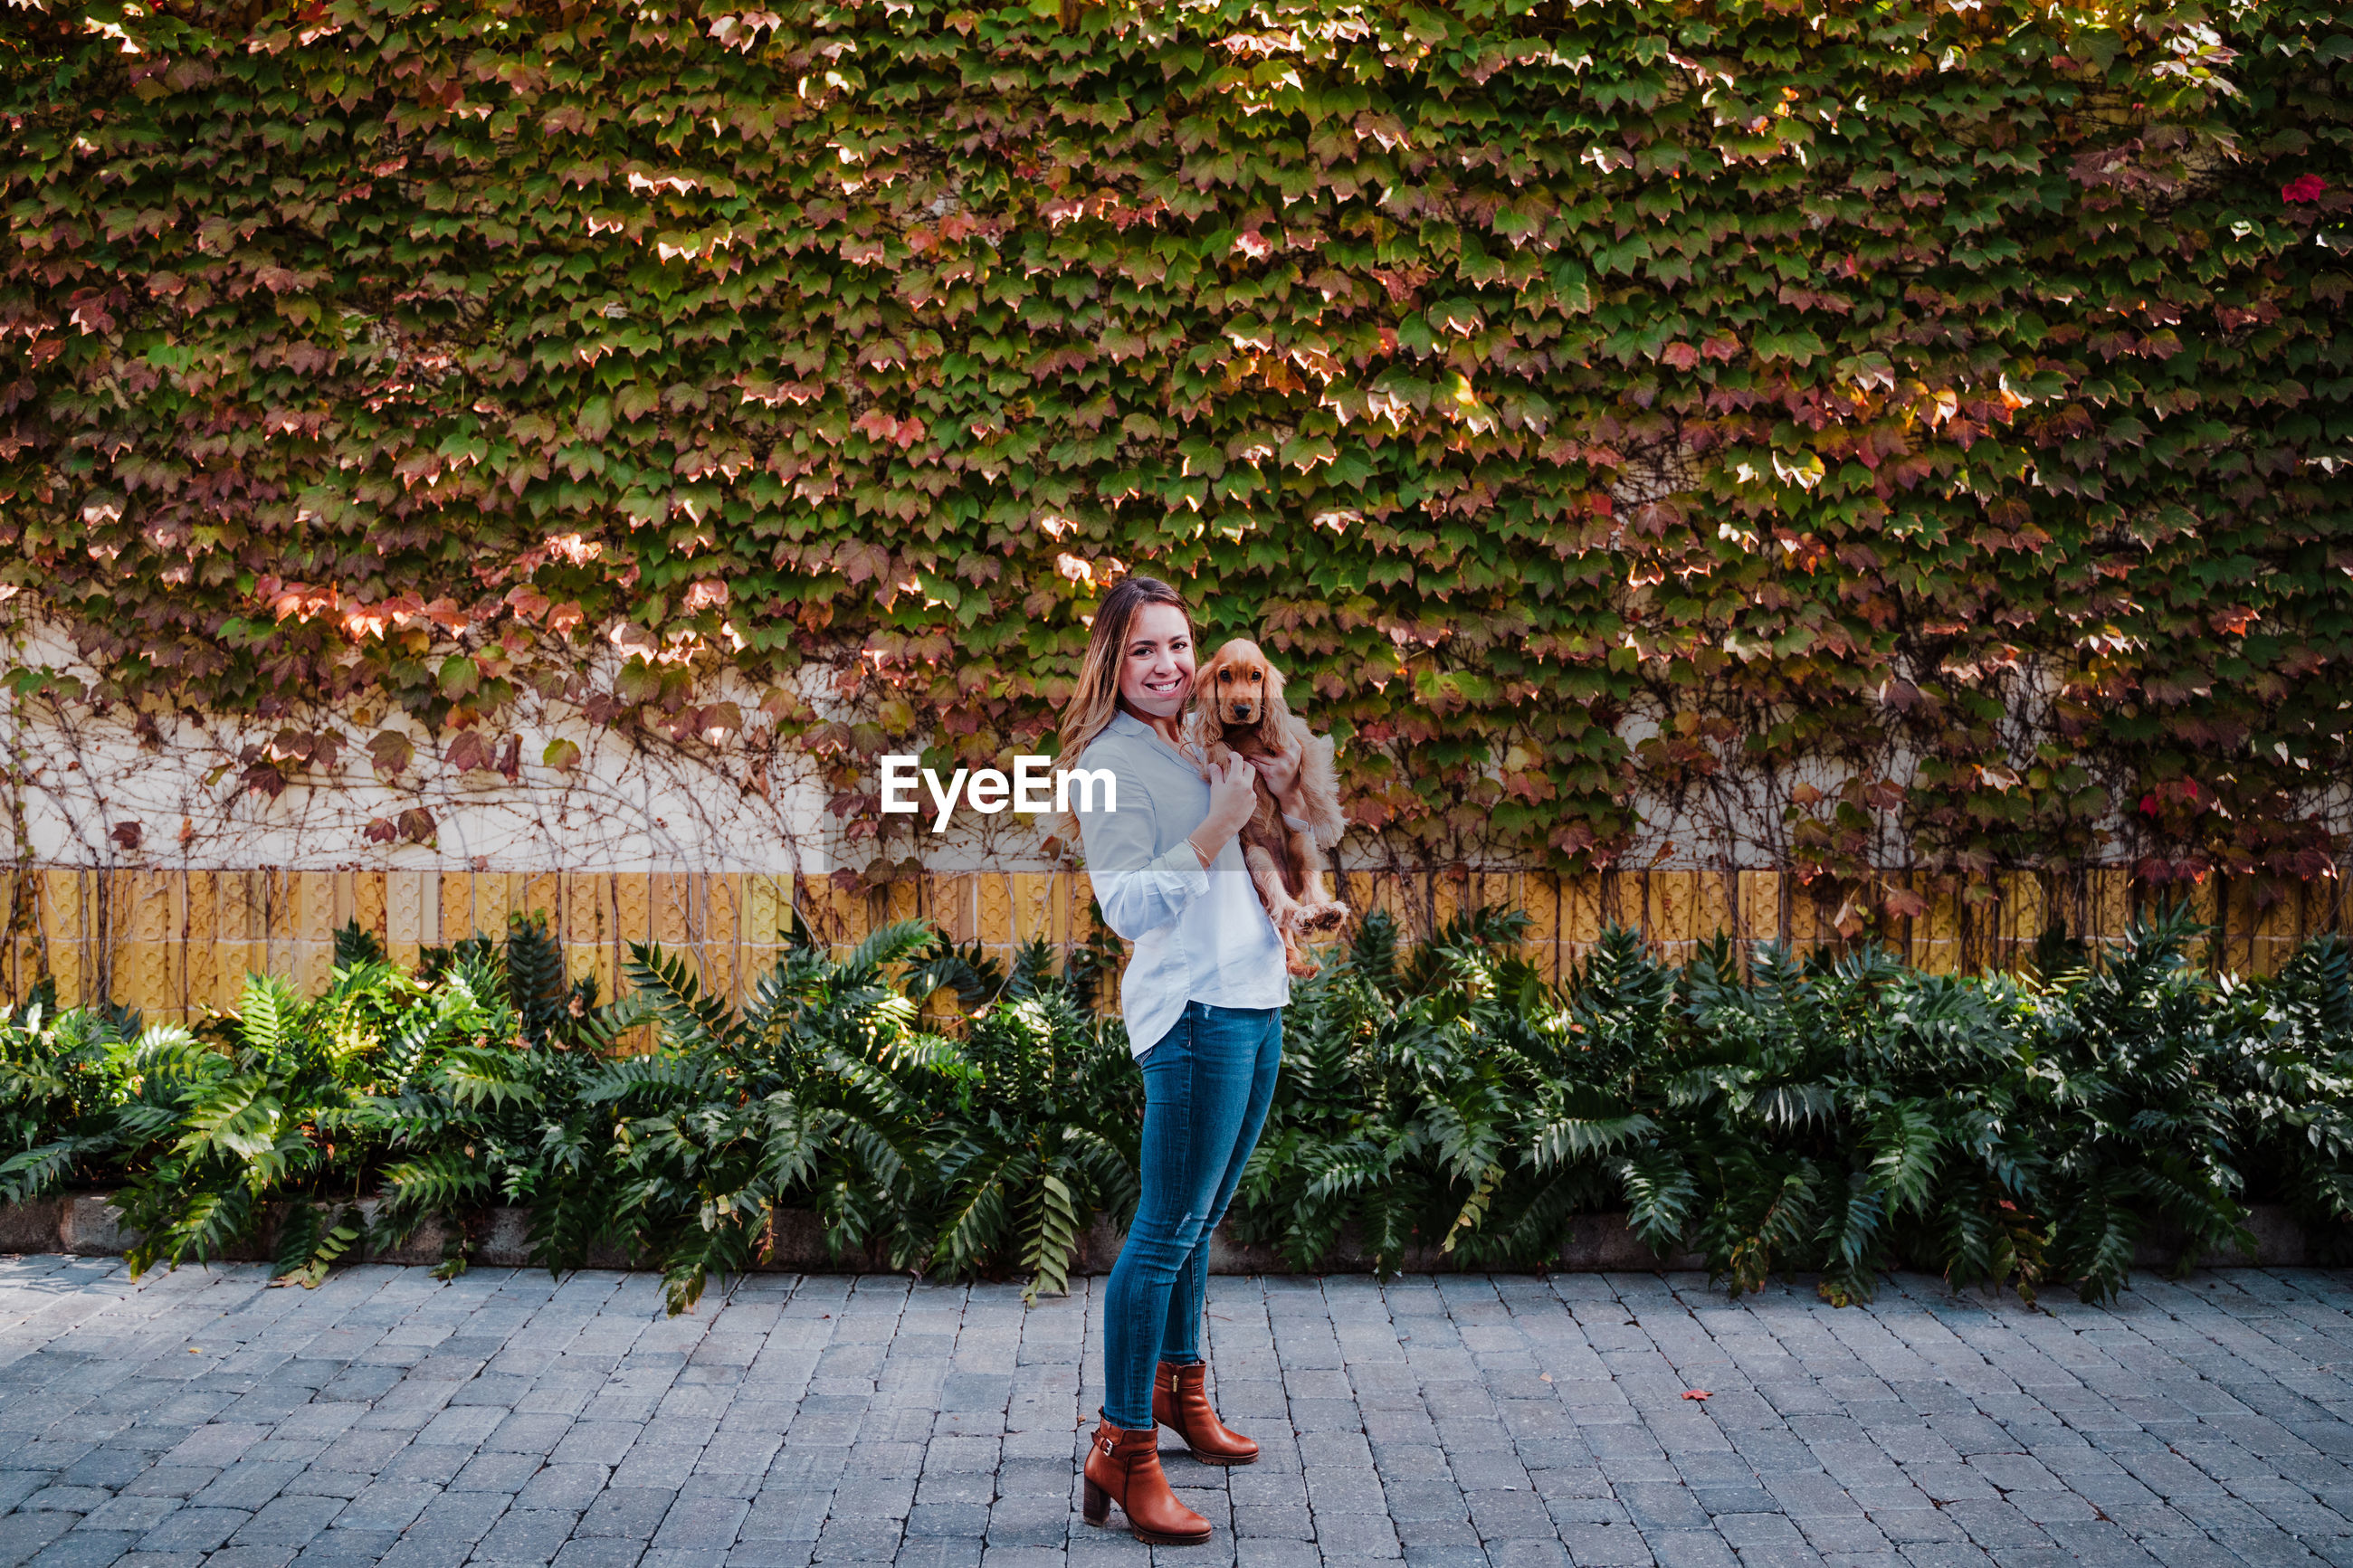 Full length portrait of smiling young woman standing against plants